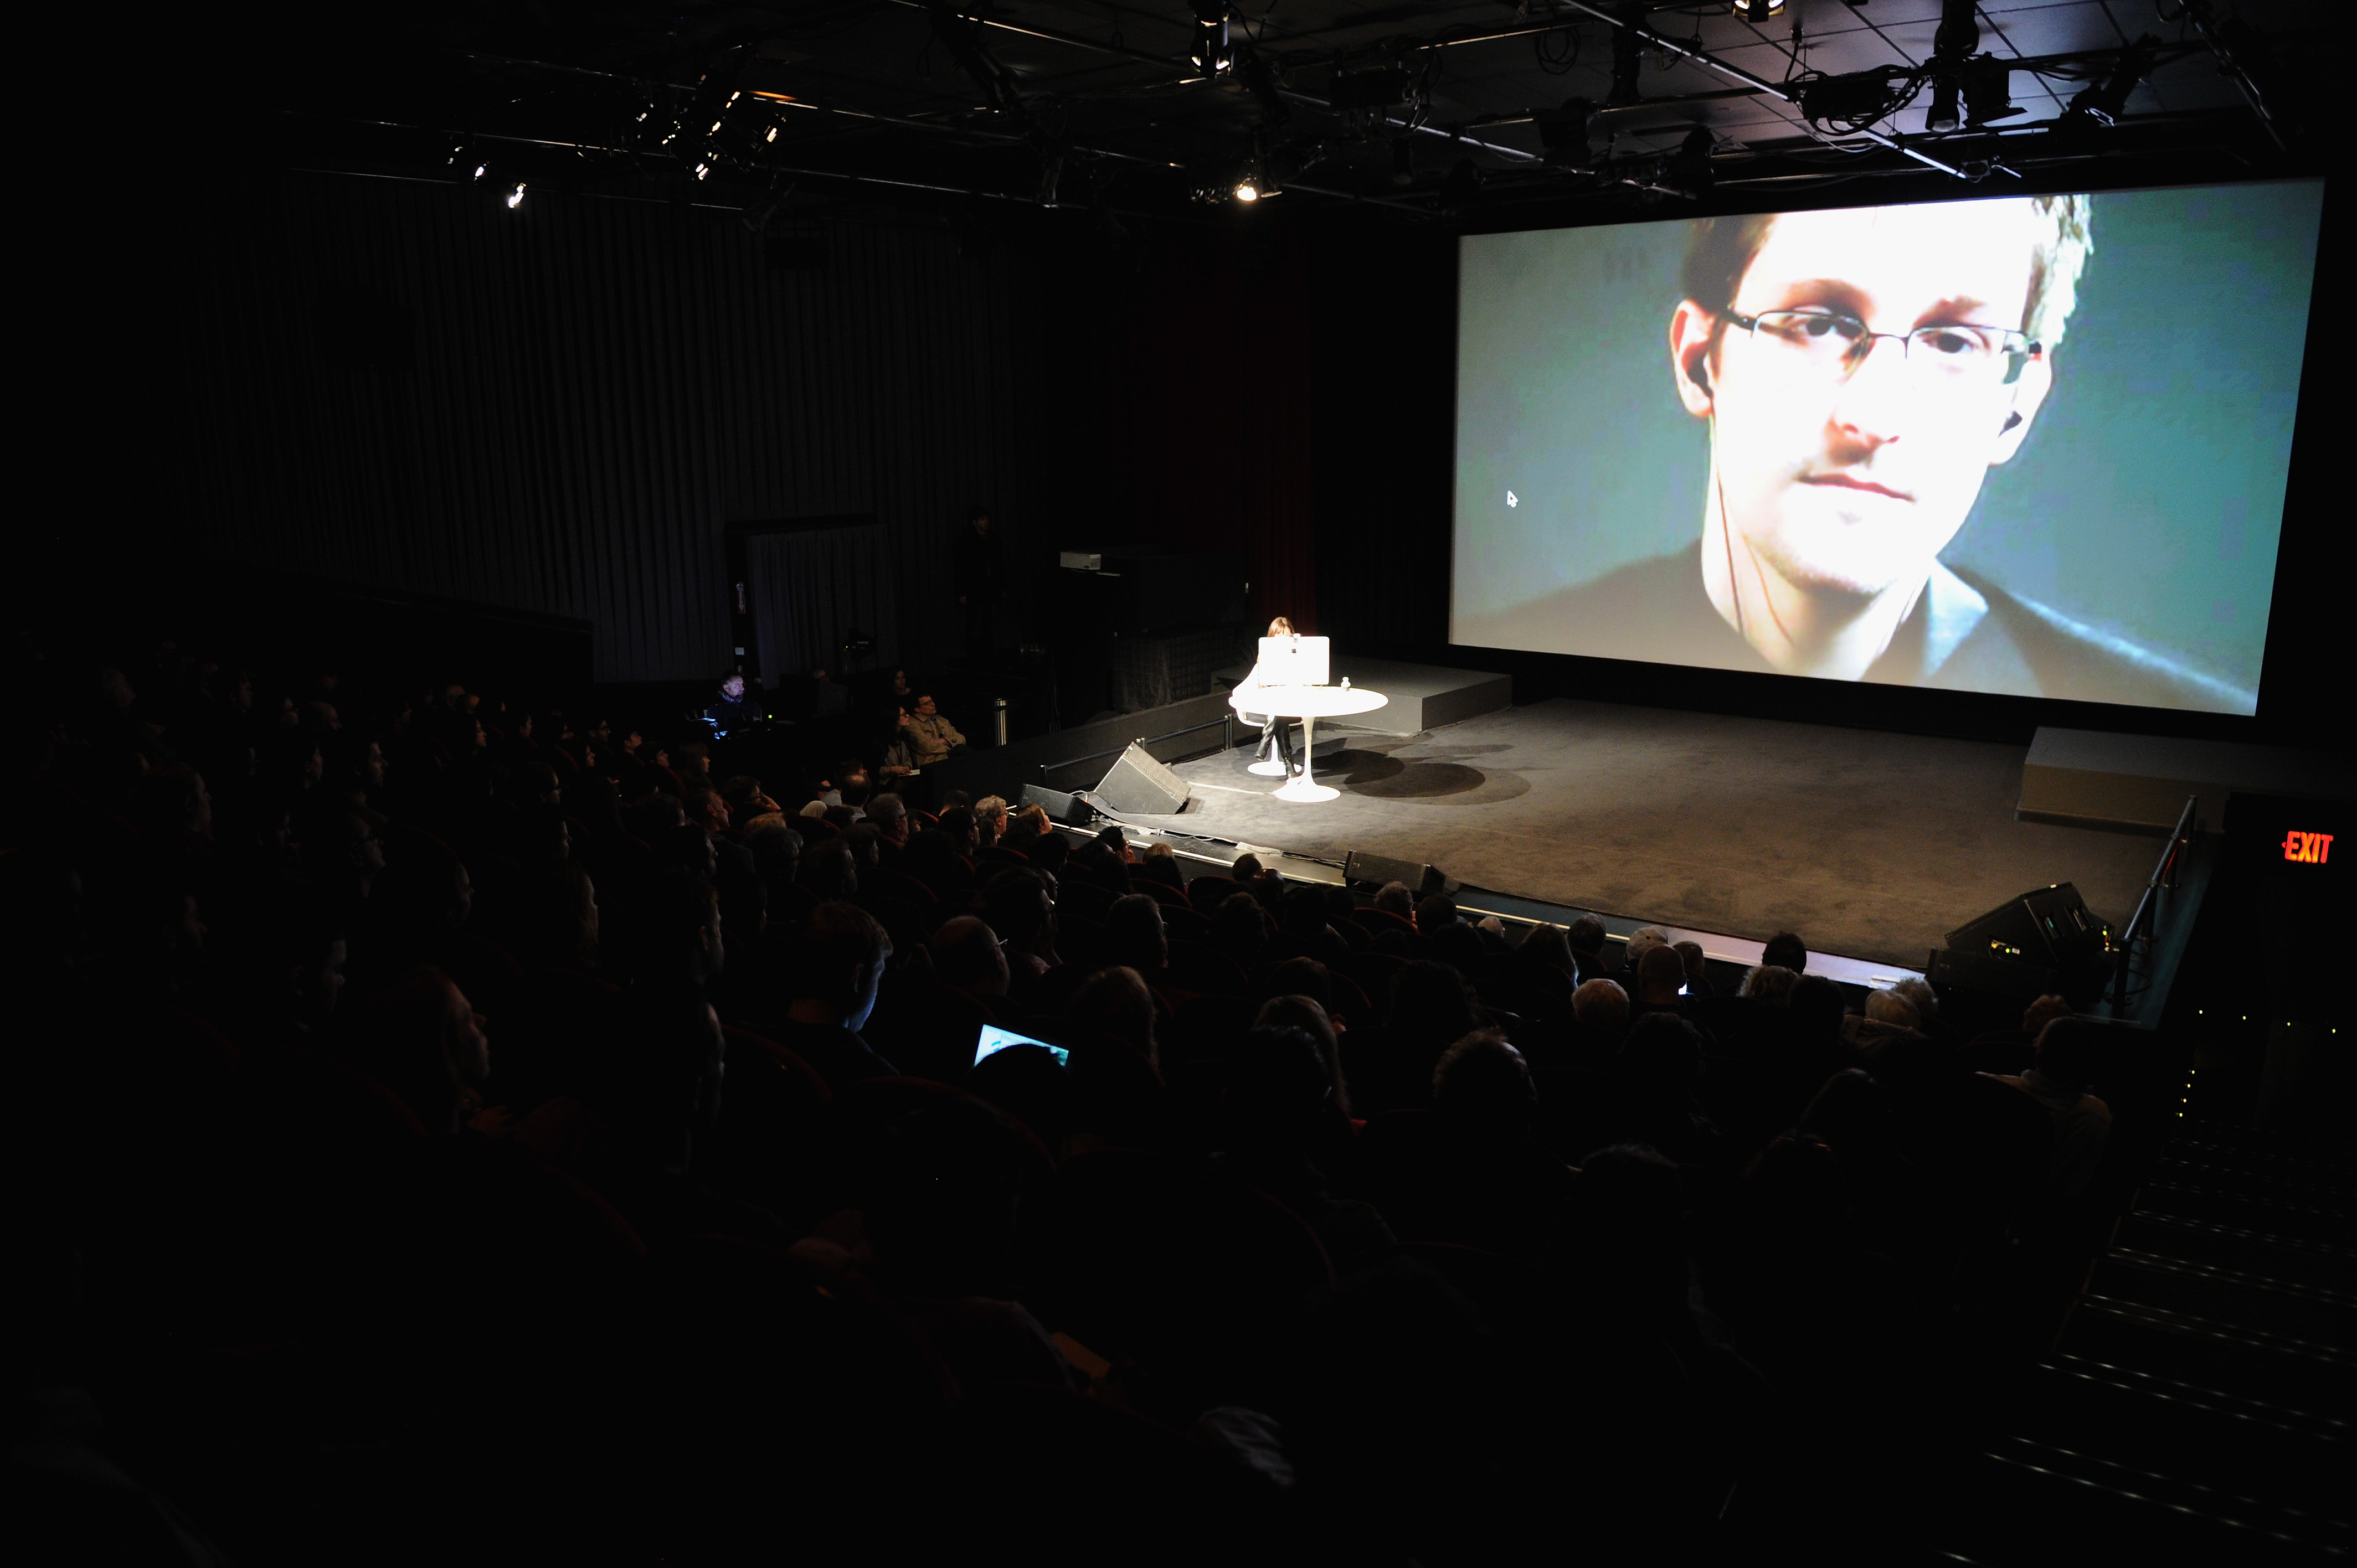 General view of atmosphere at Edward Snowden Interviewed by Jane Mayer at the MasterCard stage at SVA Theatre during The New Yorker Festival on Oct. 11, 2014